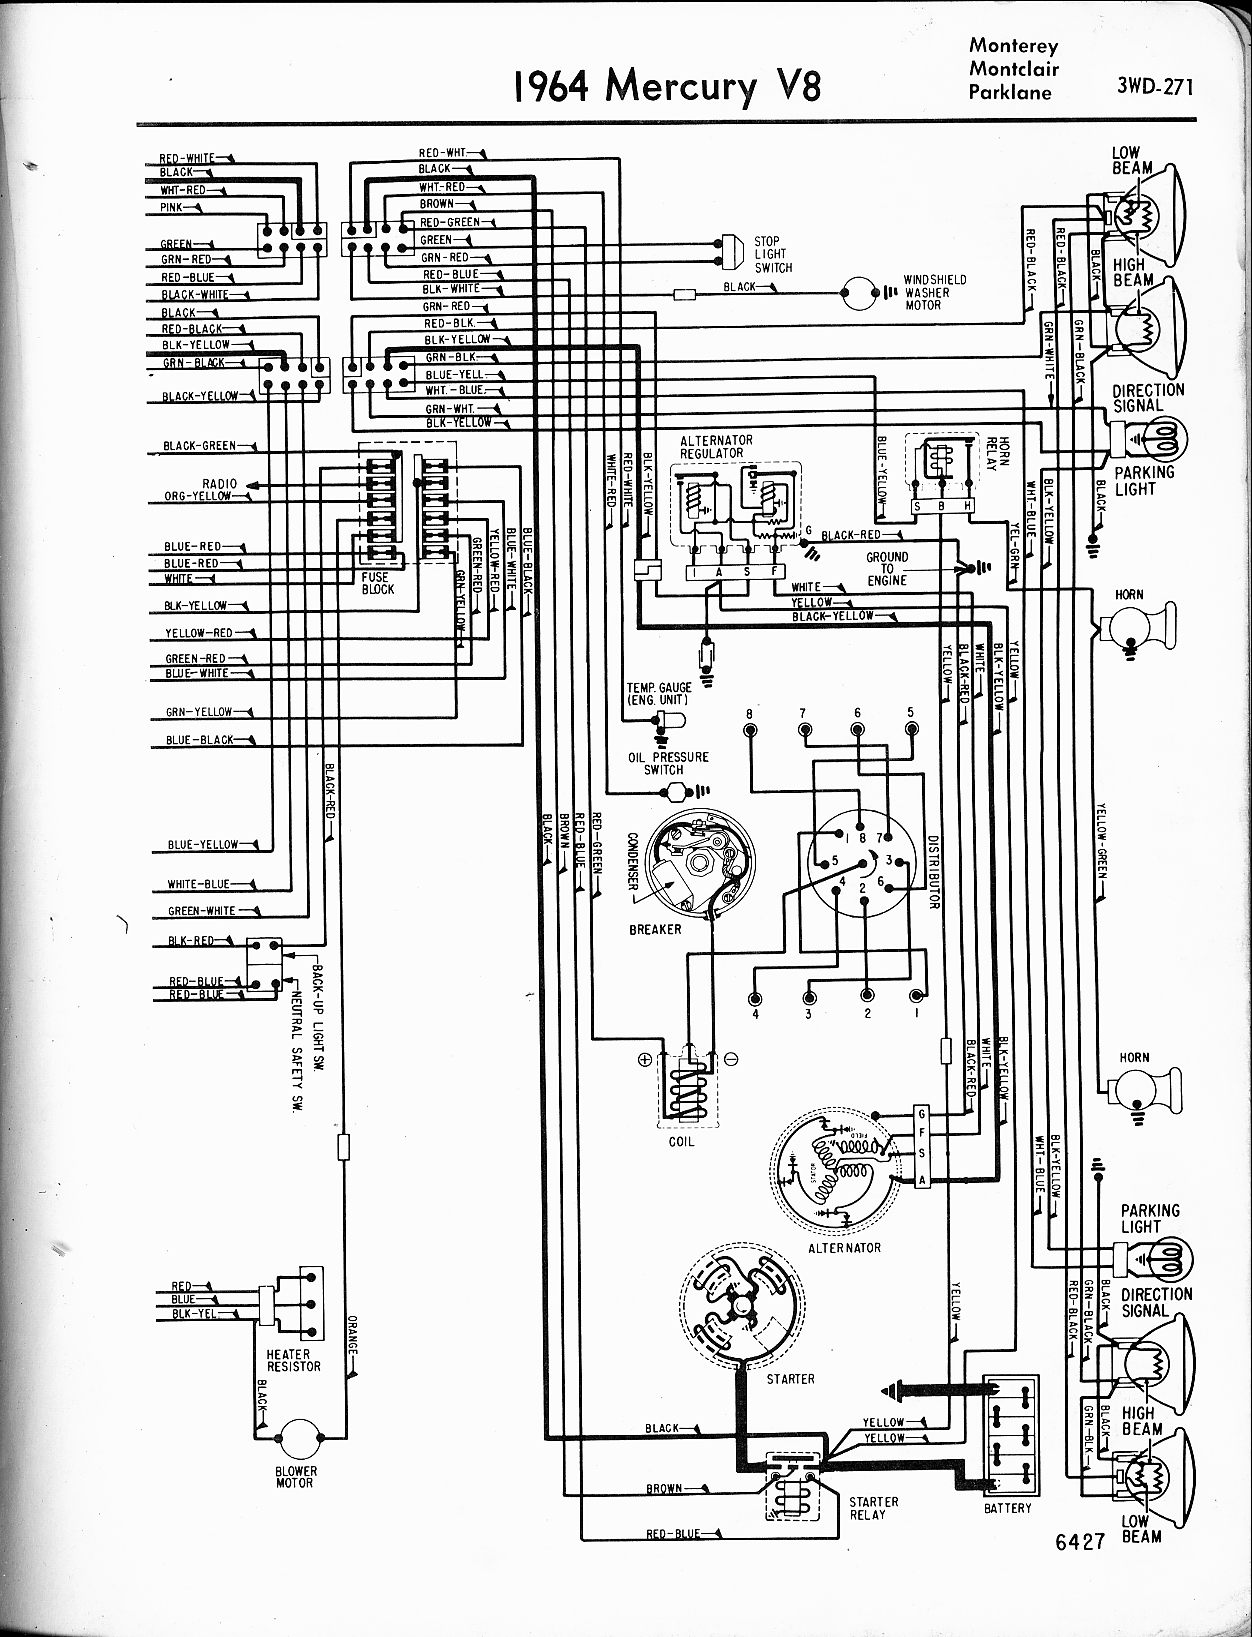 Oldsmobile vin location wiring diagram and fuse box diagram images - Mercury Wiring Diagrams The Old Car Manual Project